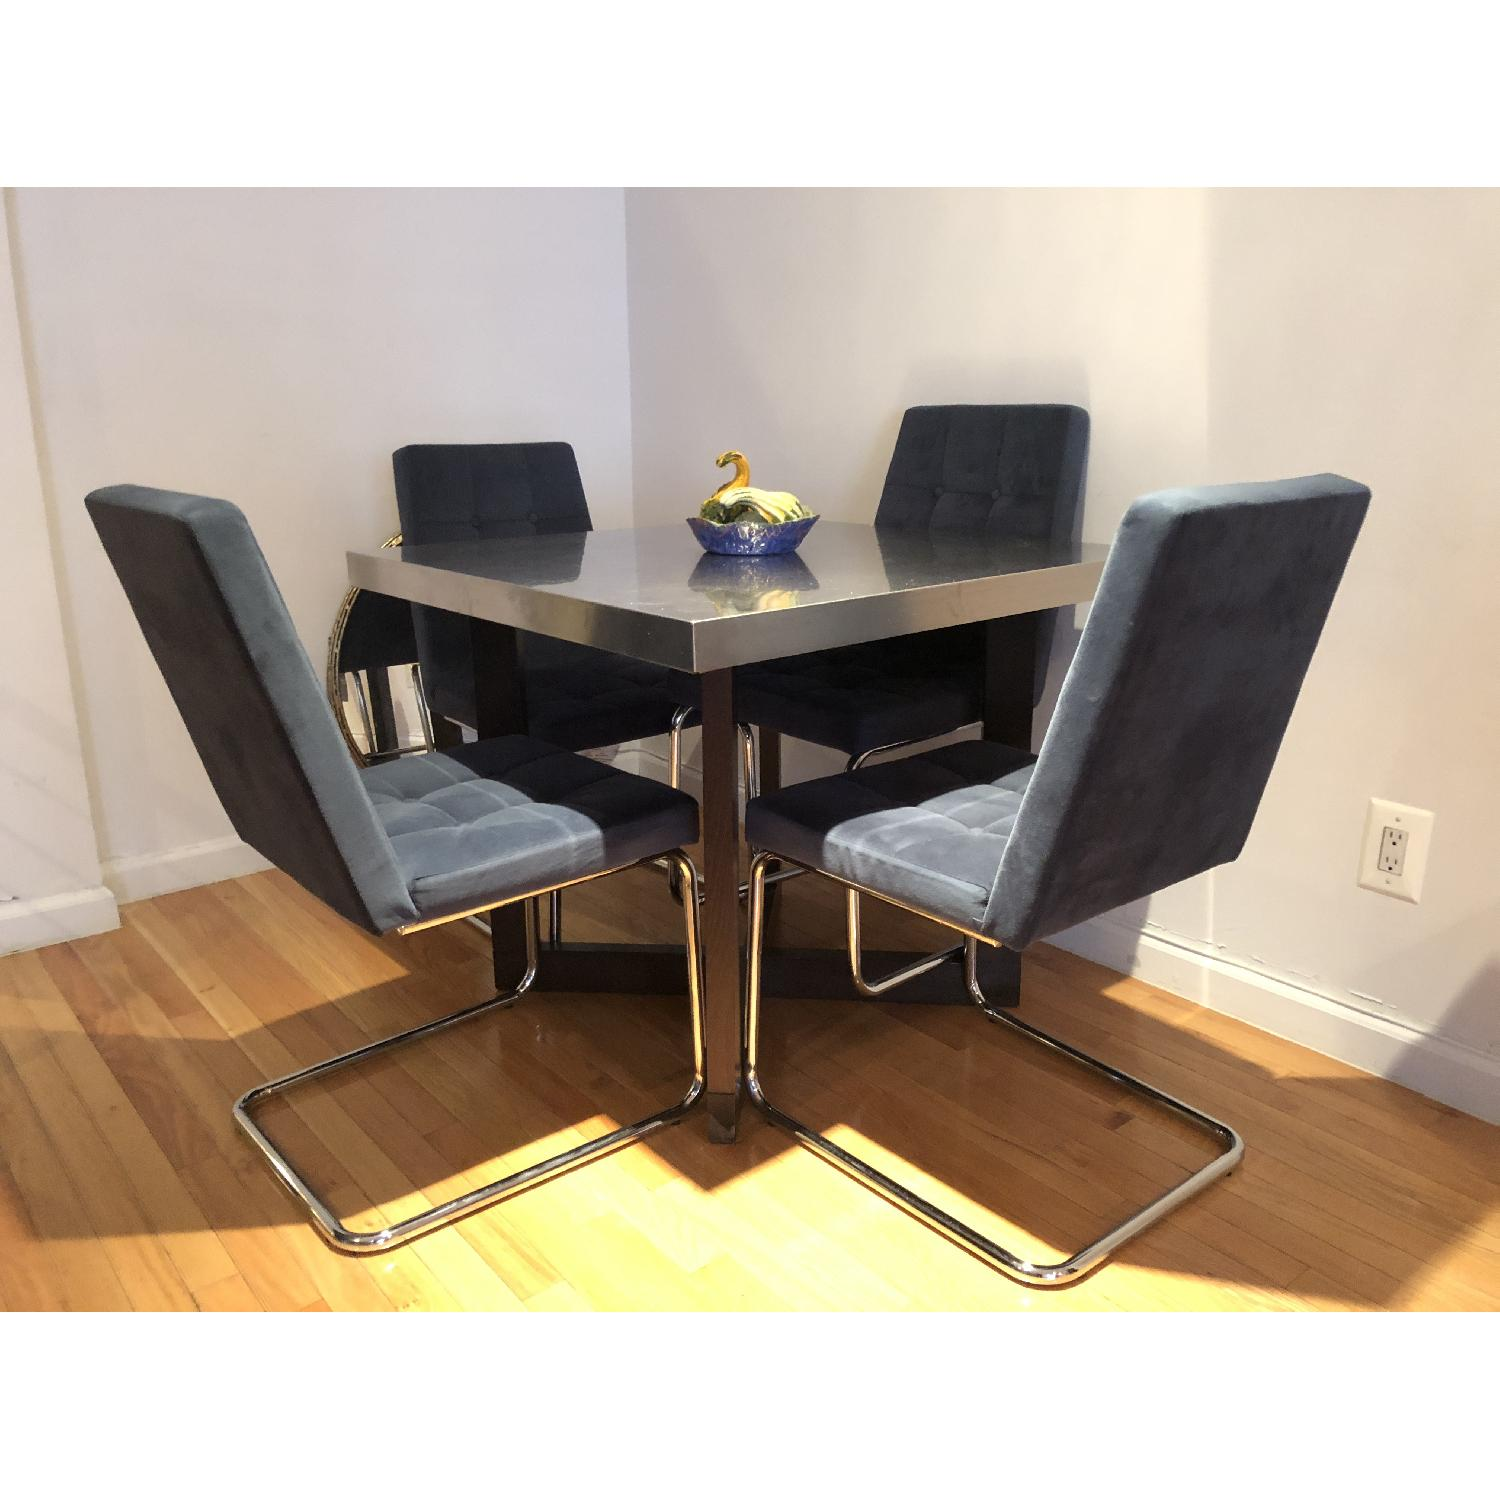 West Elm Solid Wood Table w/ Stainless Steel Top - image-0